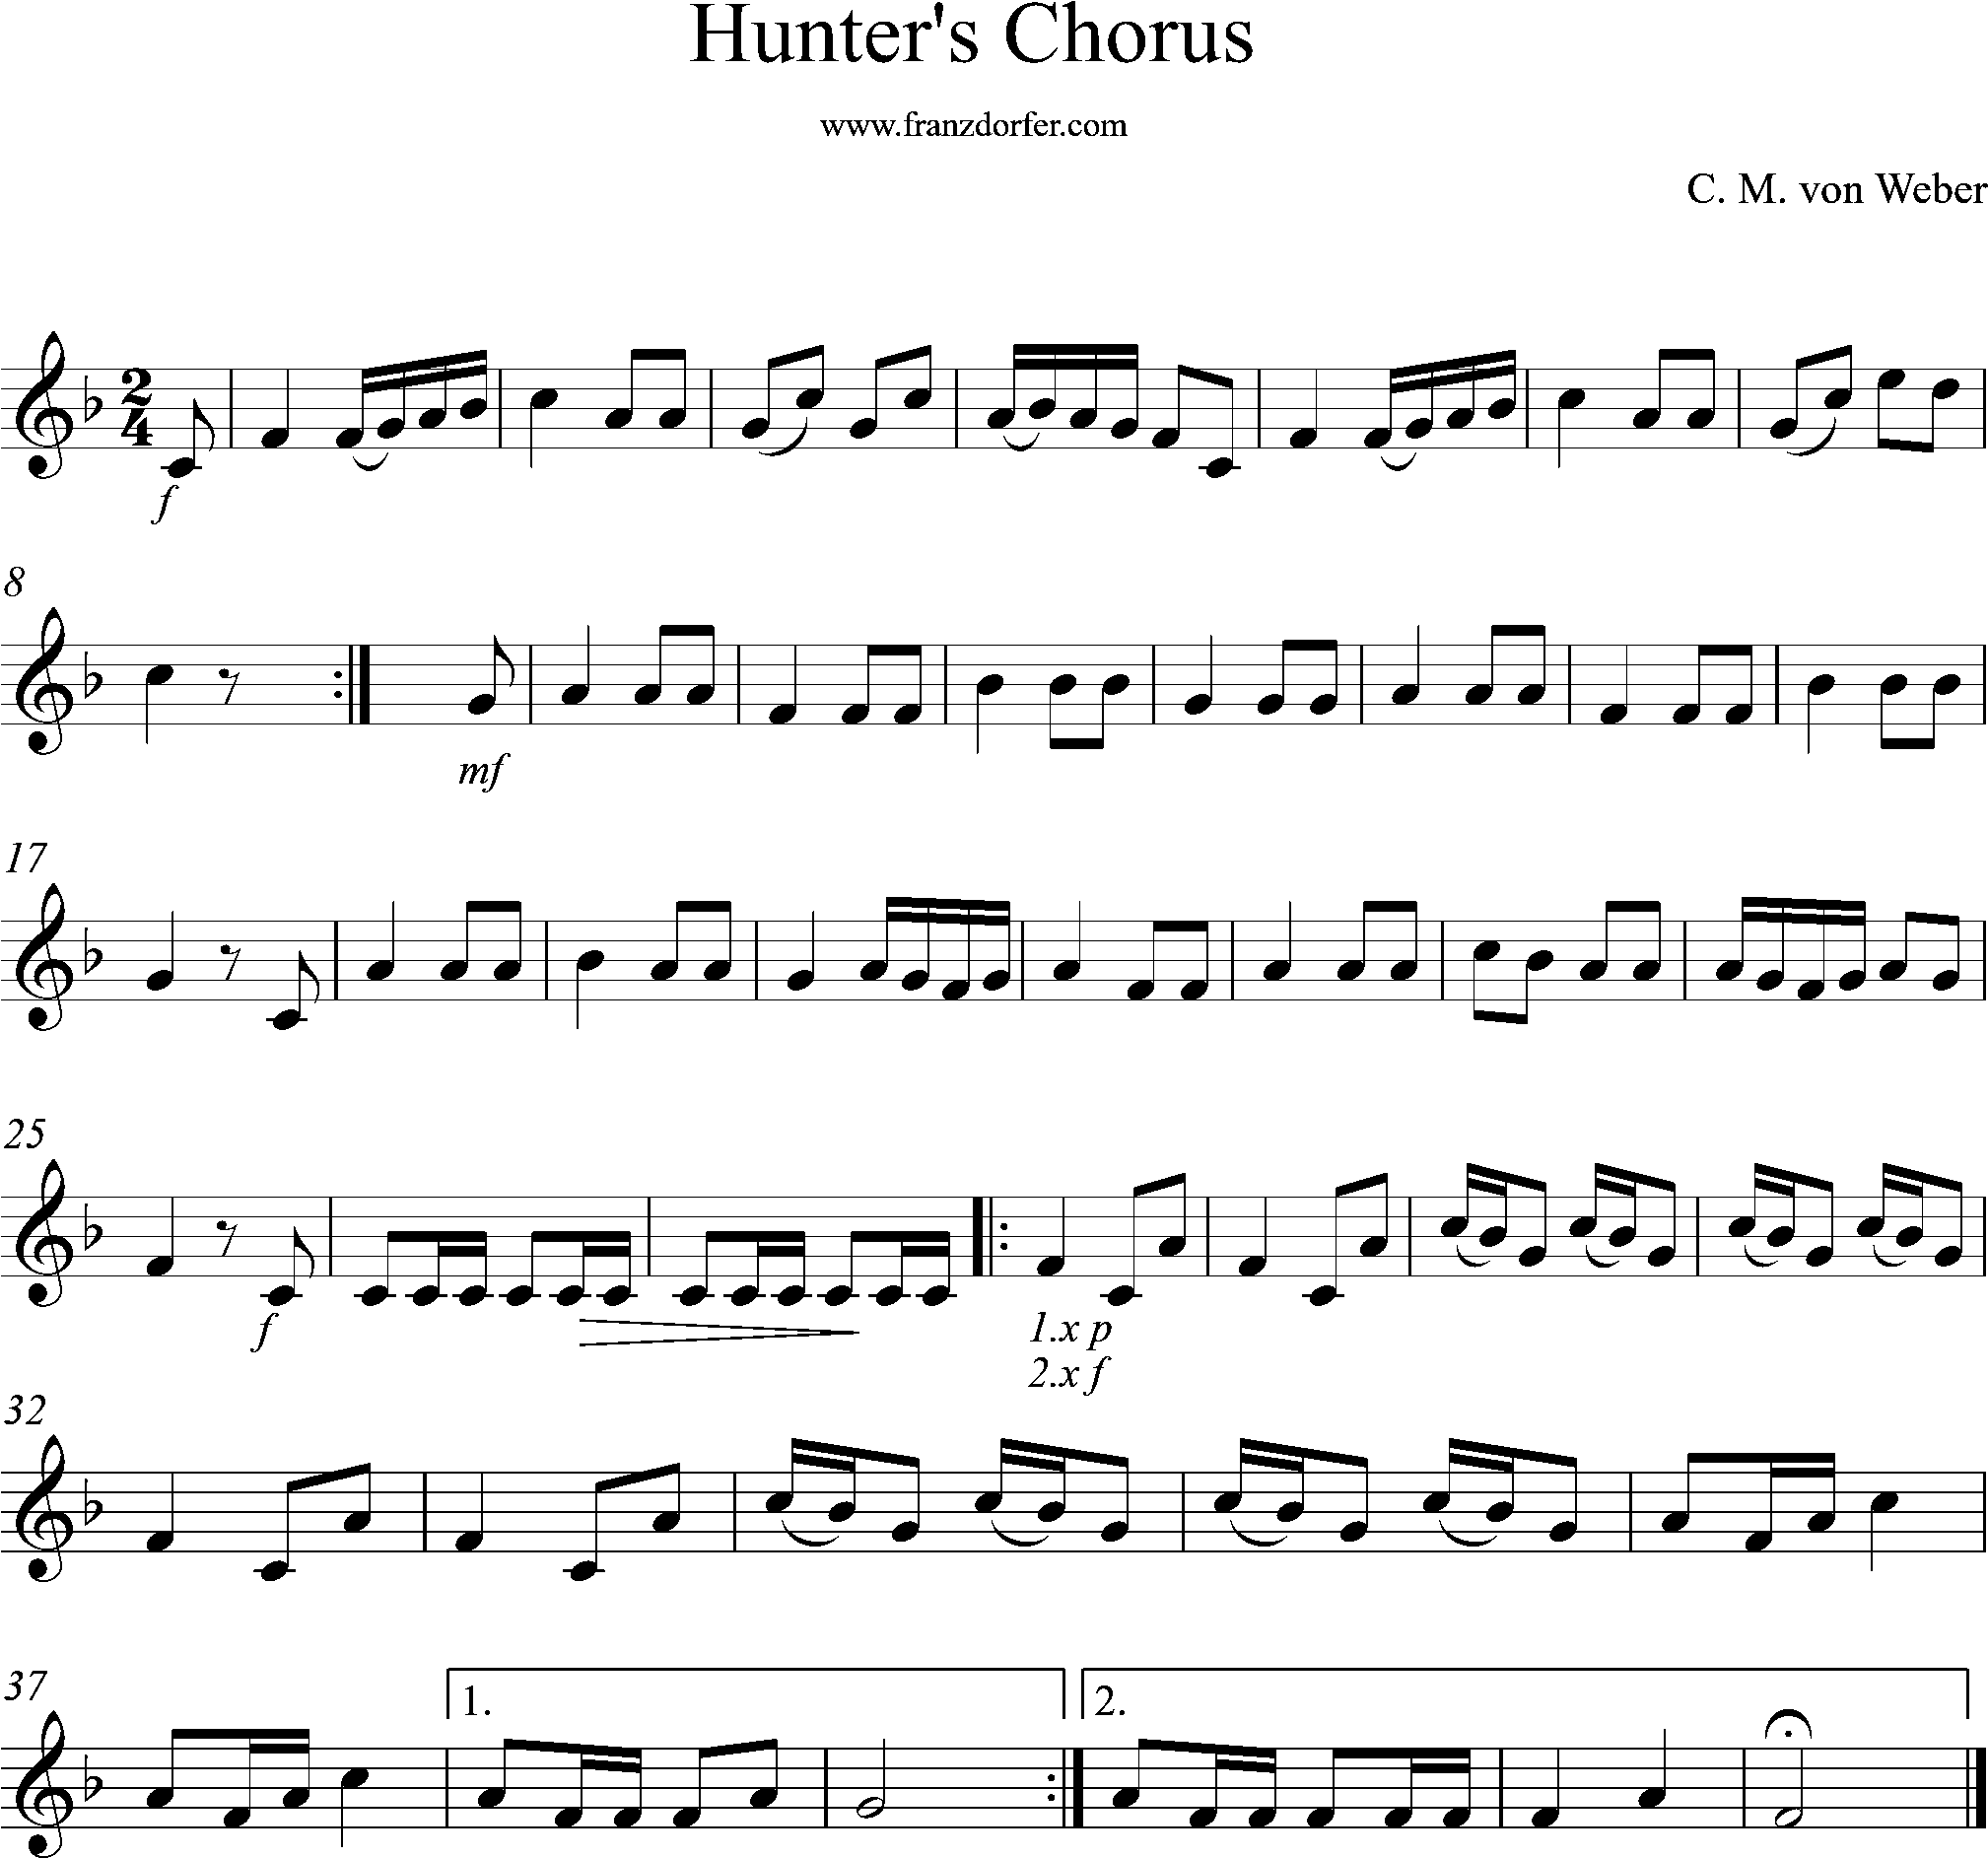 Sheetmusic, Hunters chorus, F-Major